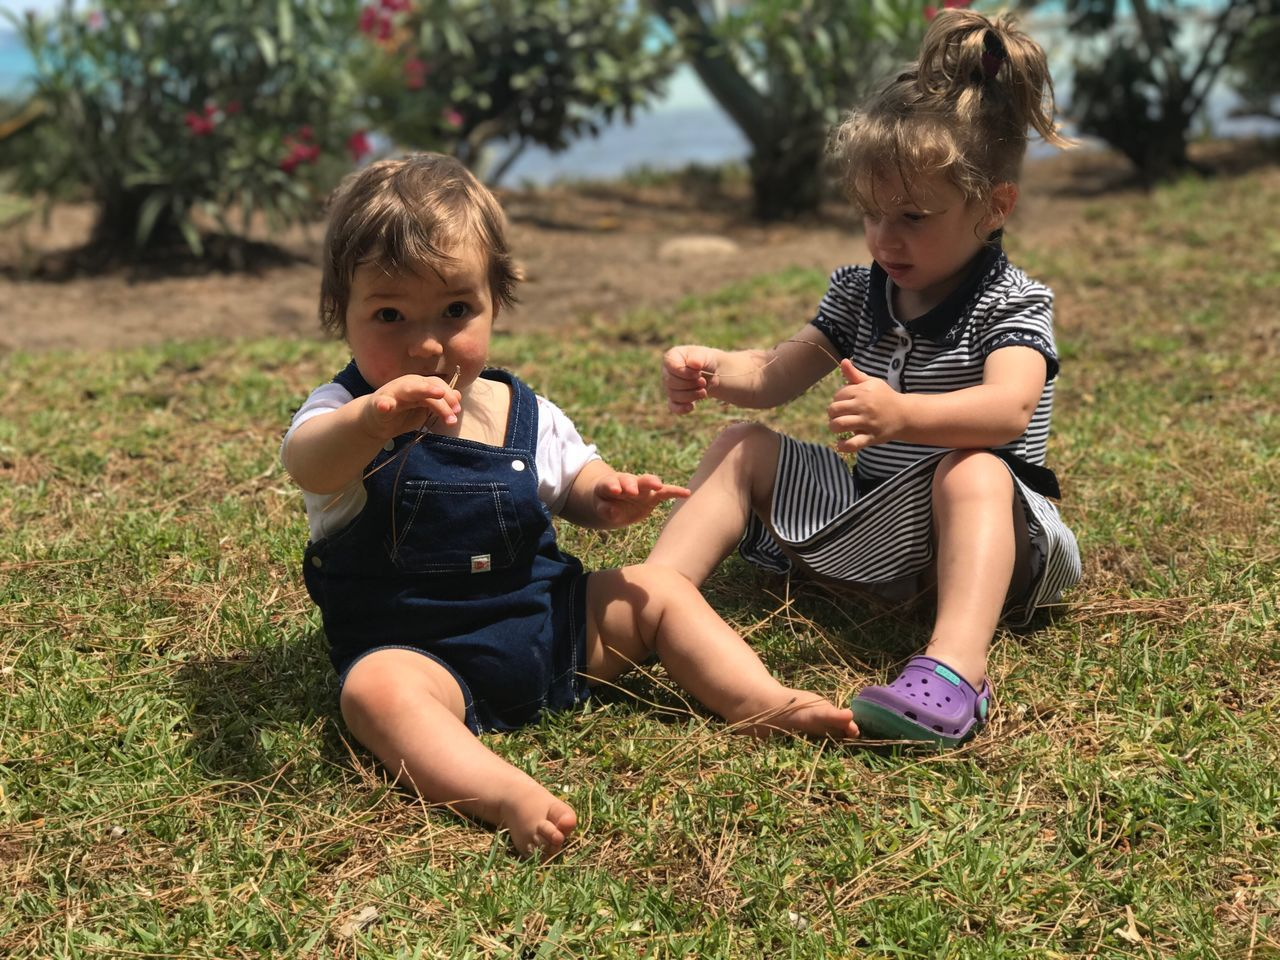 Siblings Childhood Two People Grass Sitting Casual Clothing Full Length Togetherness Child Girls Day Outdoors Real People Boys Bonding Playing Tree Blond Hair Nature Friendship People